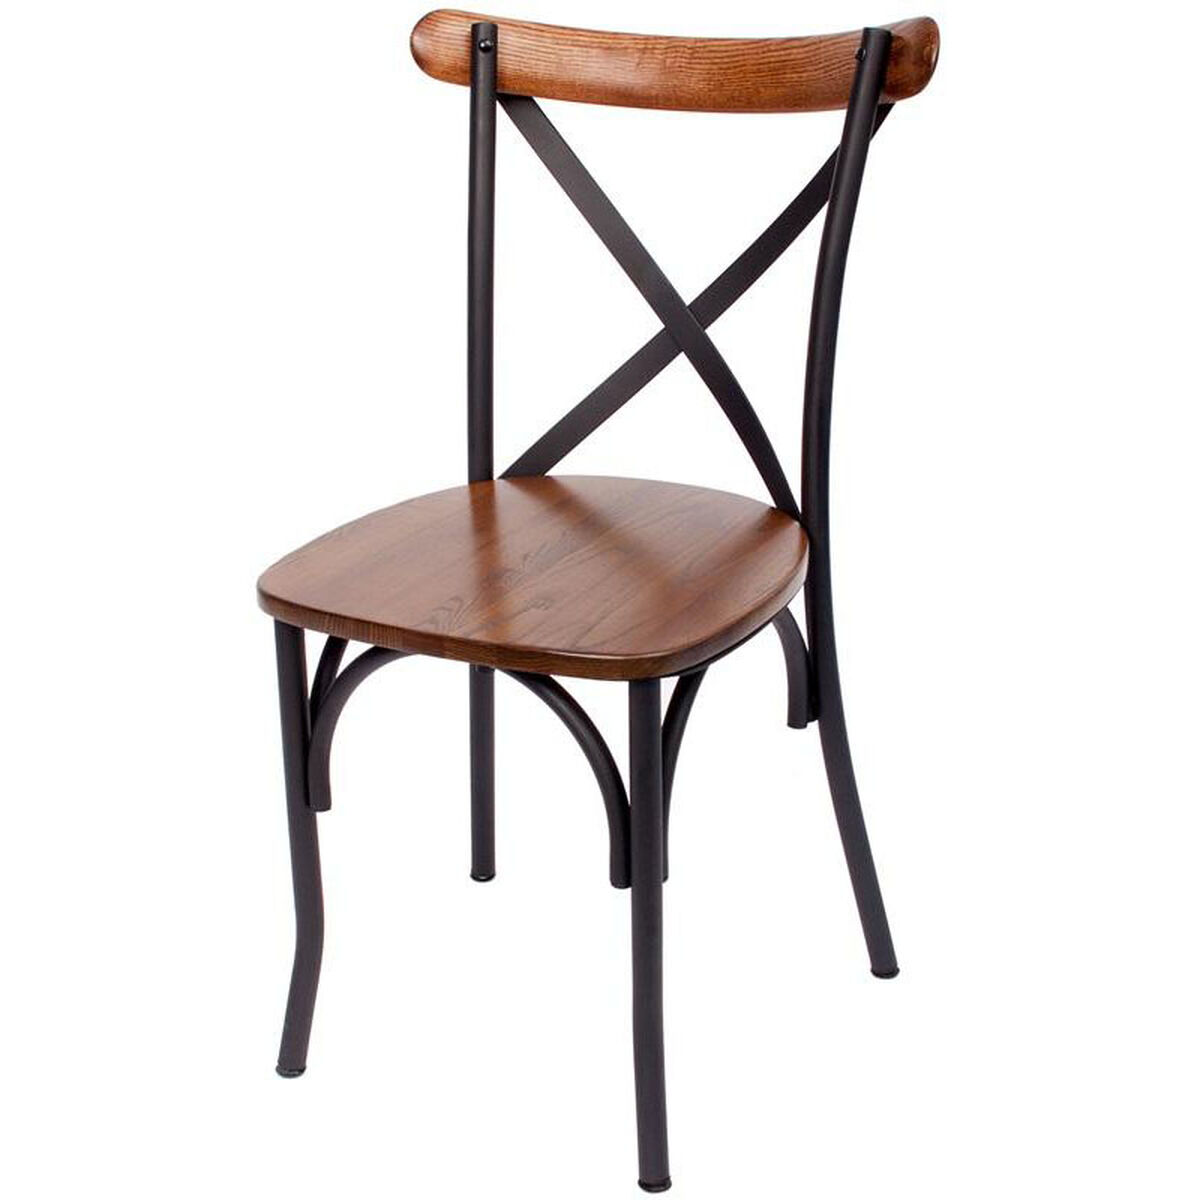 Our Henry Metal Cross Back Side Chair Autumn Ash Wood Seat Is On Now